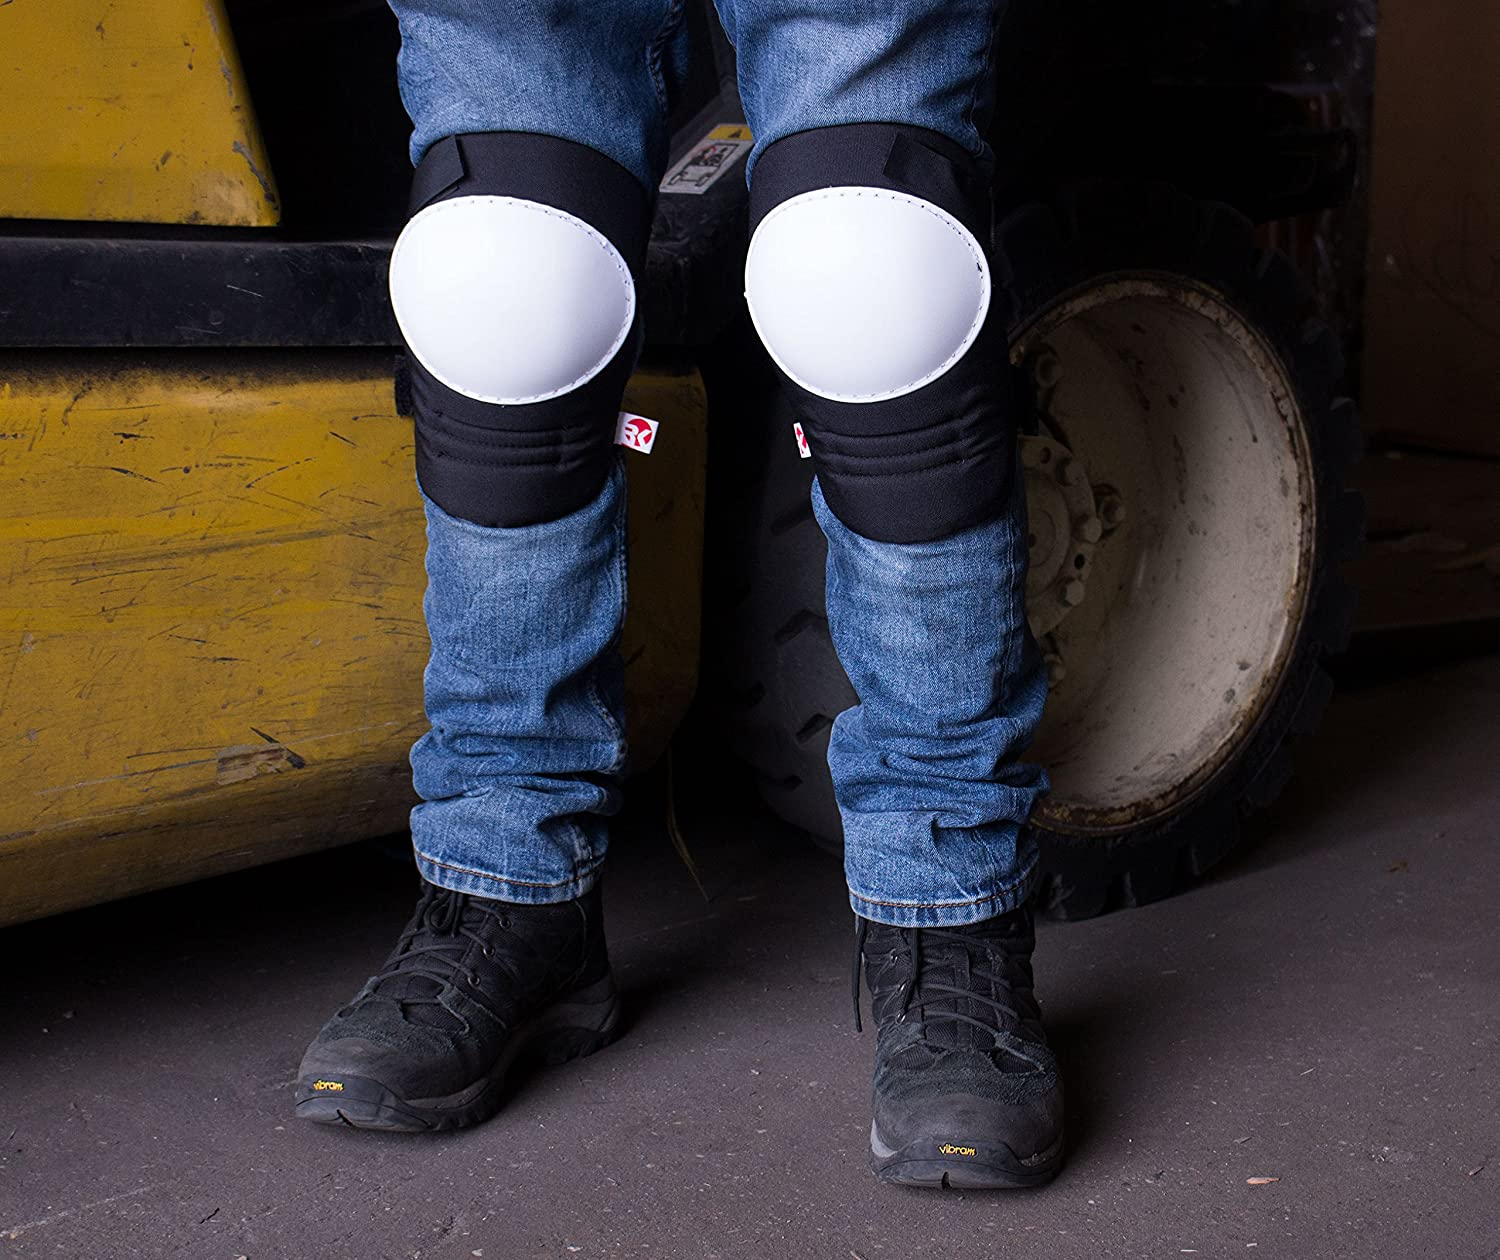 Stitched Poly Cap White, 1 Pair RK Safety RK-KP21 Kneepads with White Hard Sheel